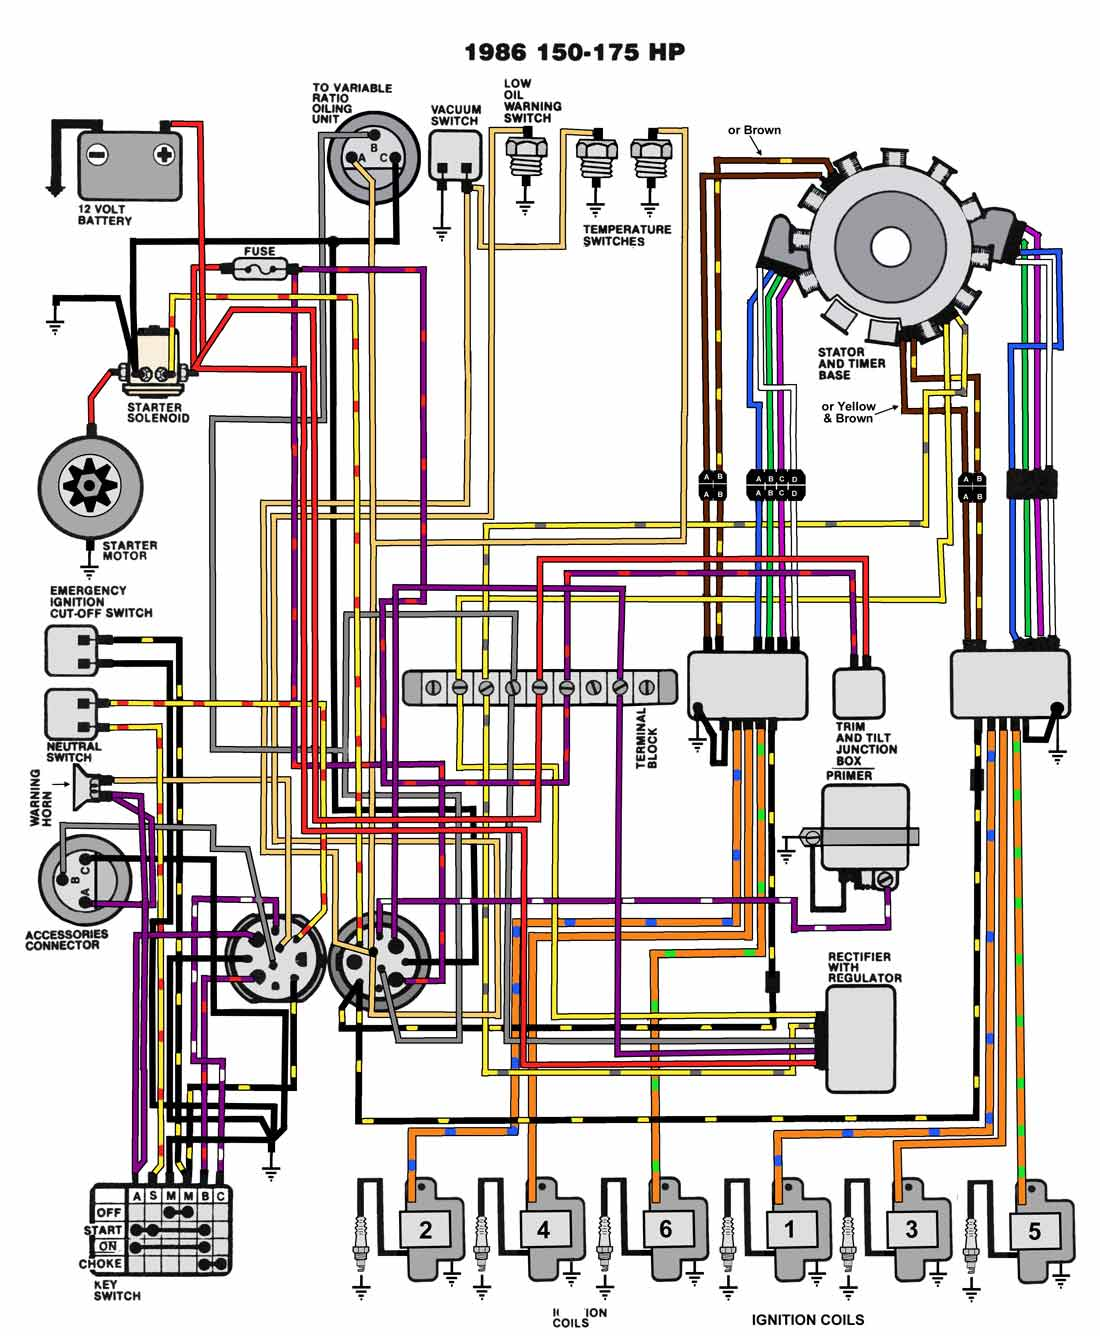 hight resolution of evinrude johnson outboard wiring diagrams mastertech marinev 6 motors 150 u0026 175 hp 1986